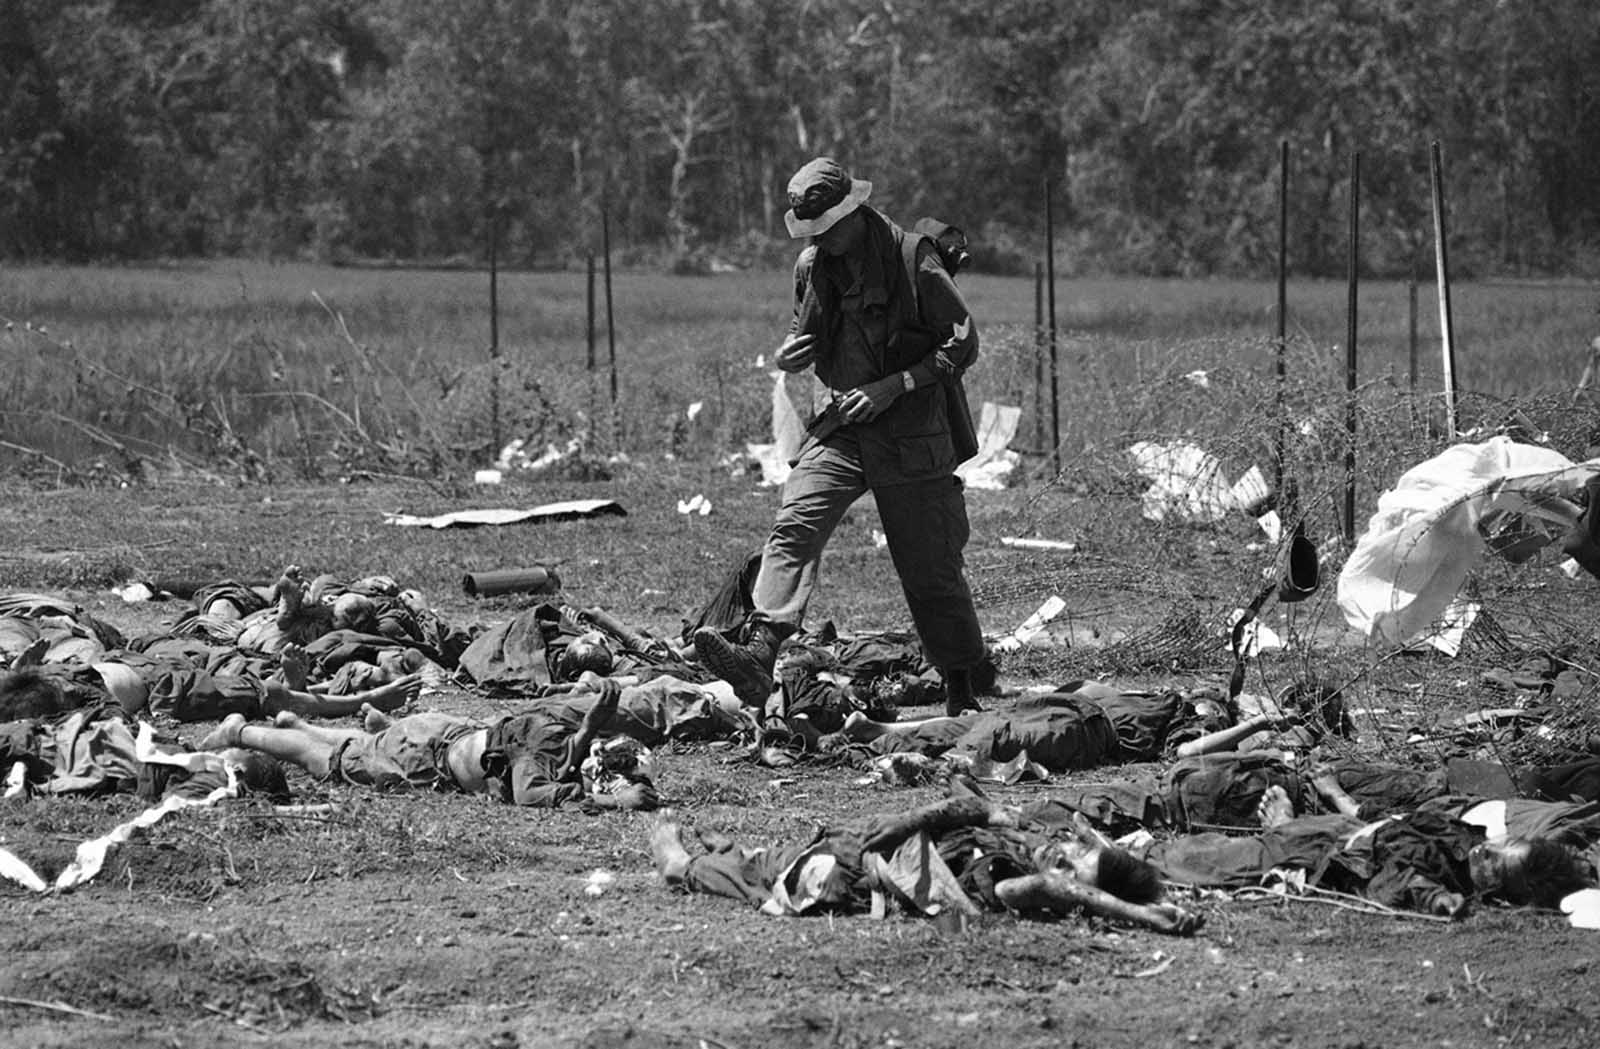 A GI of the U.S. 199th light infantry brigade walks through bodies laid out just outside the barbed wire perimeter of U.S. firebase crown in Cambodia on May 14, 1970. Fifty North Vietnamese were killed and only four Americans wounded when the North Vietnamese, presumably thinking the firebase already abandoned, walked into an ambush by the American defenders.